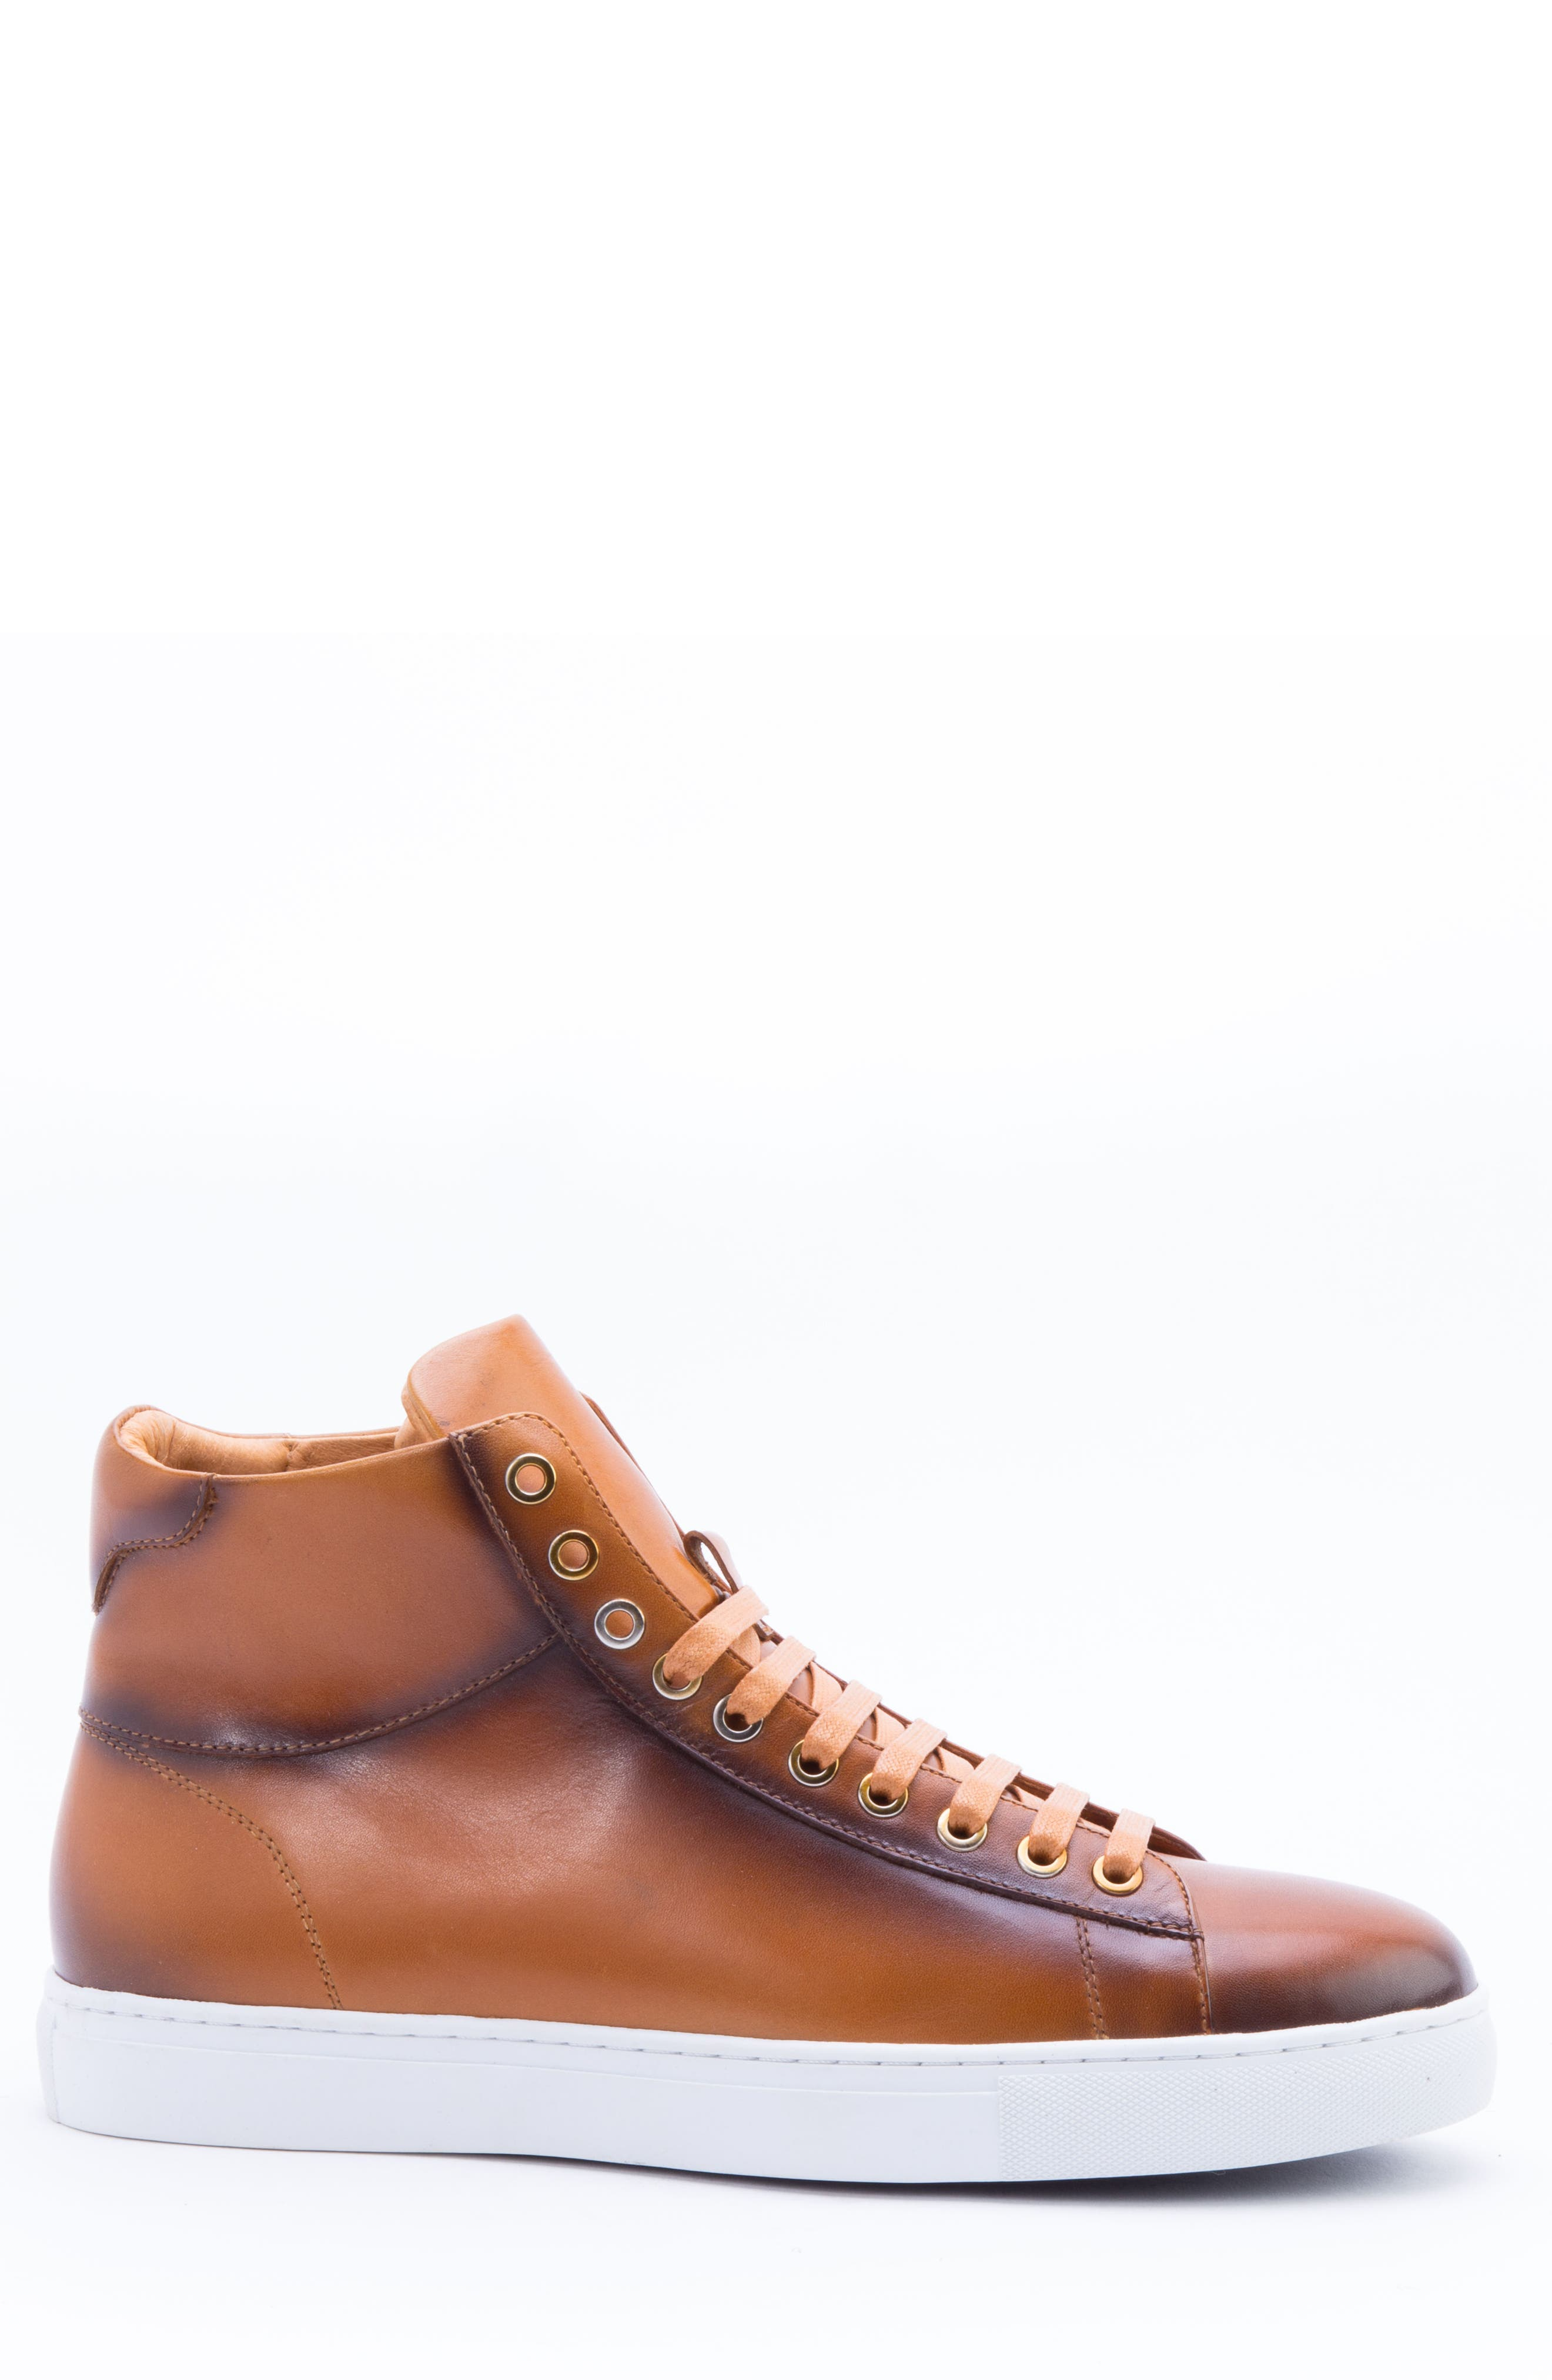 Spinback High Top Sneaker,                             Alternate thumbnail 3, color,                             Cognac Leather